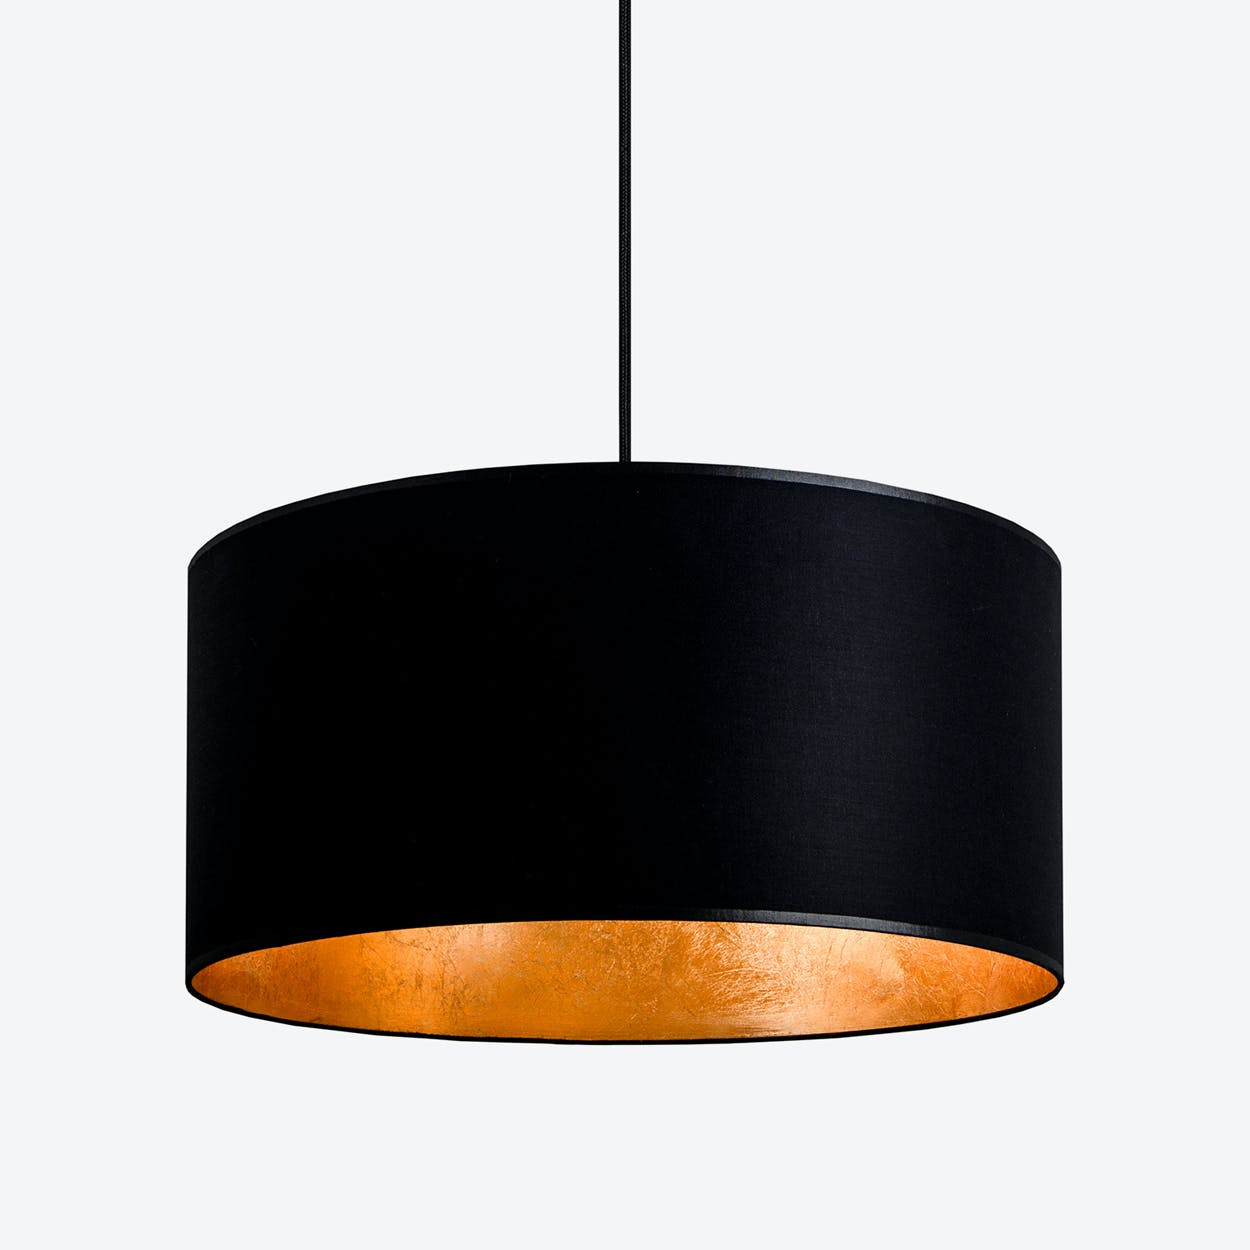 MIKA Large Single Pendant Light in Black with Gold Leaf